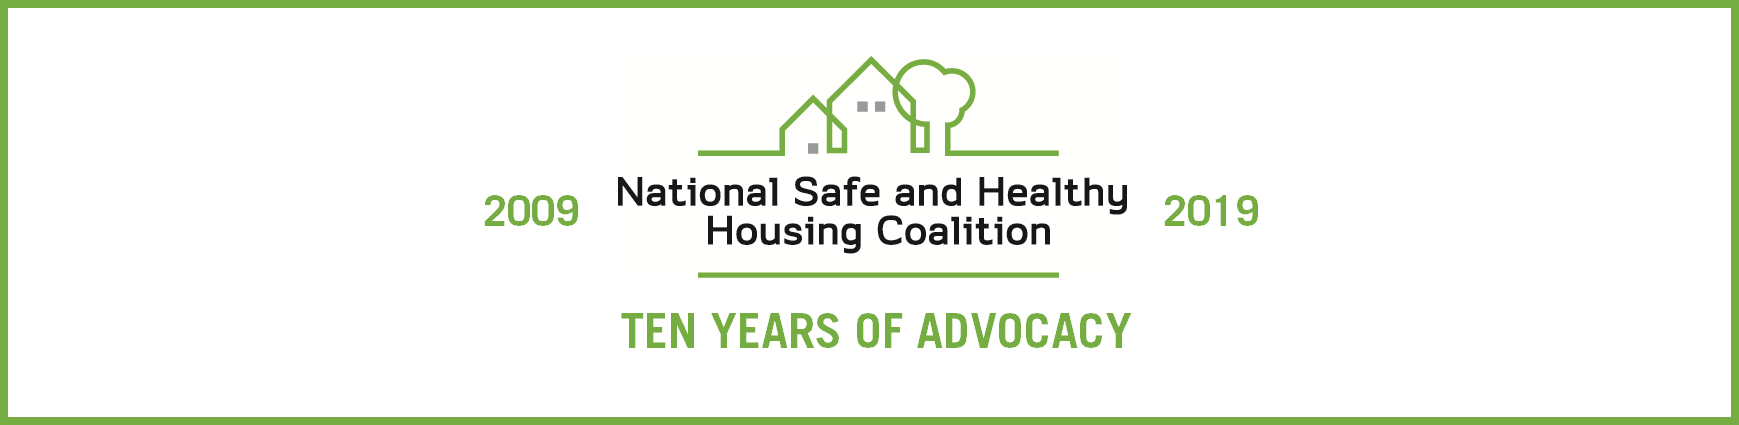 Ten Years of the National Safe and Healthy Housing Coalition: Who We Are Now